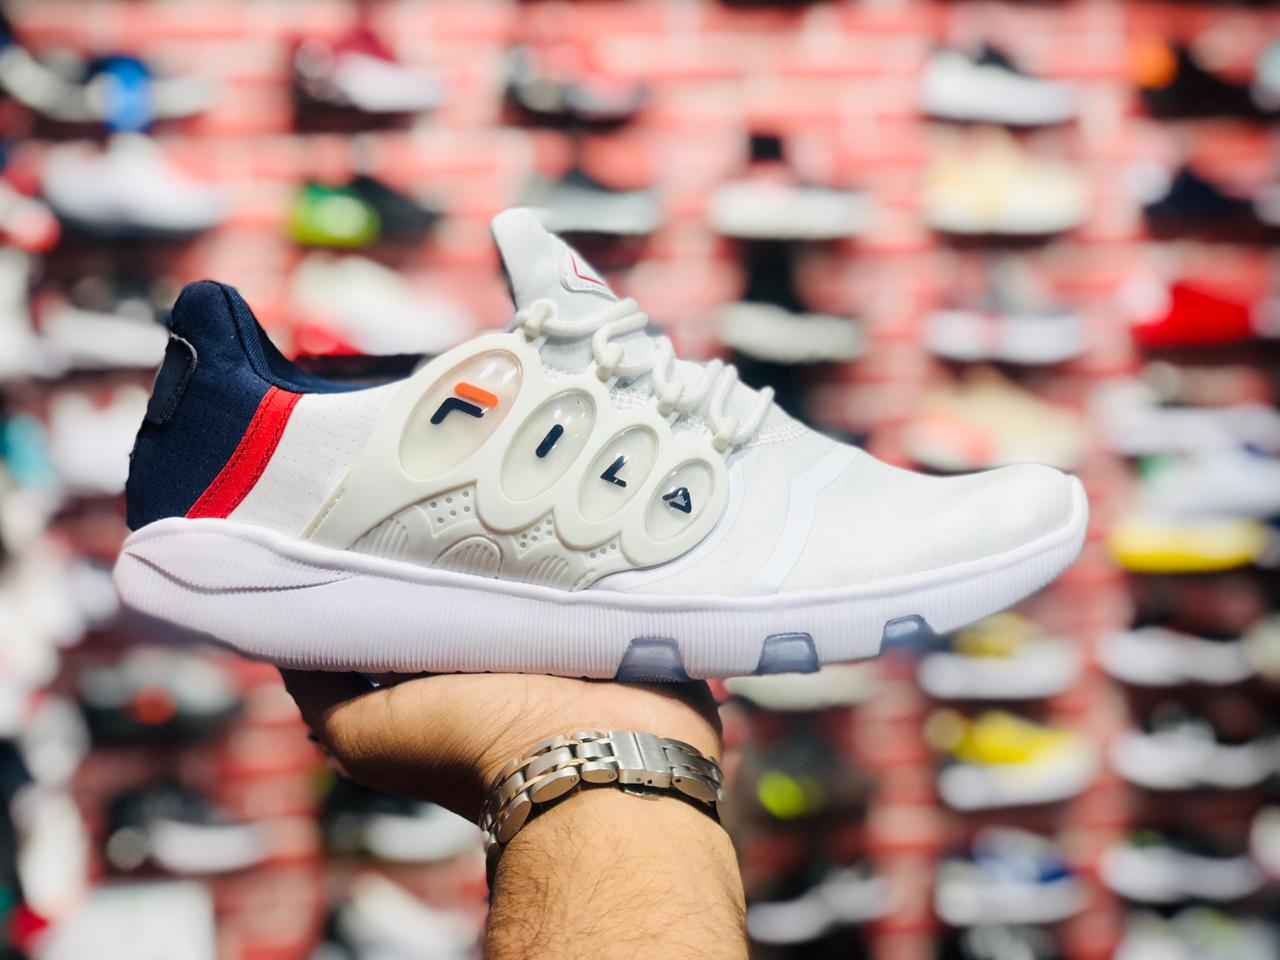 Fila soft capsule shoes (White)